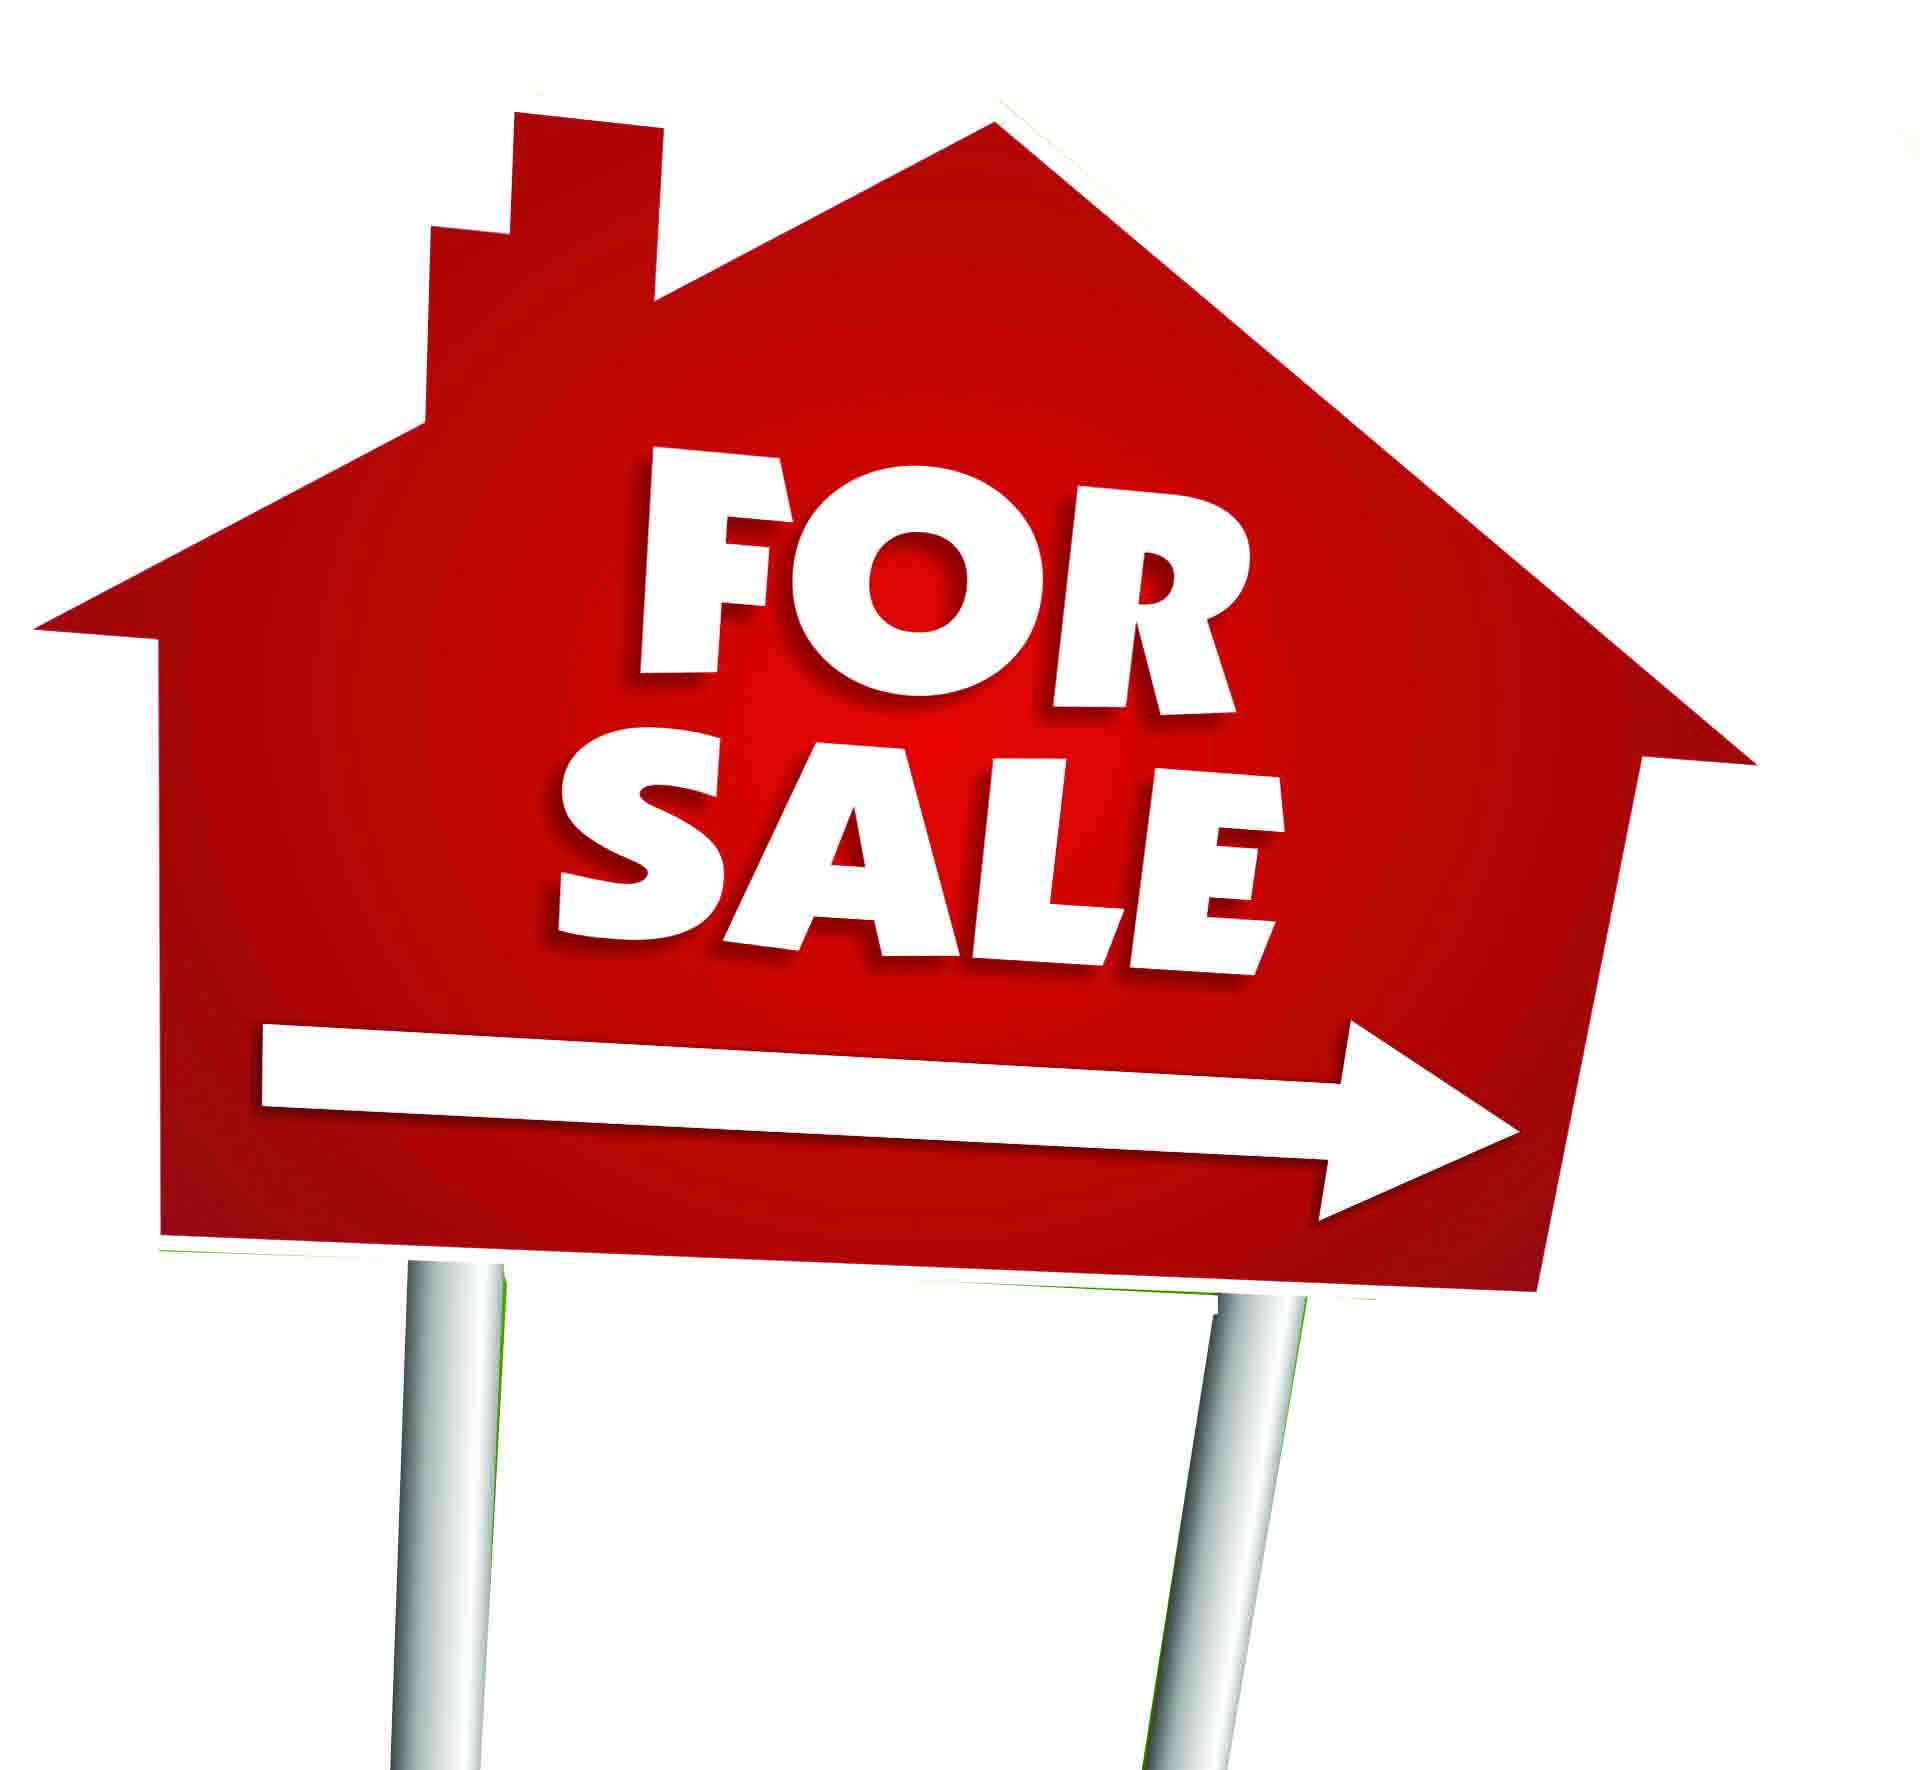 House for sale sign clipart panda free clipart images for House pictures for sale